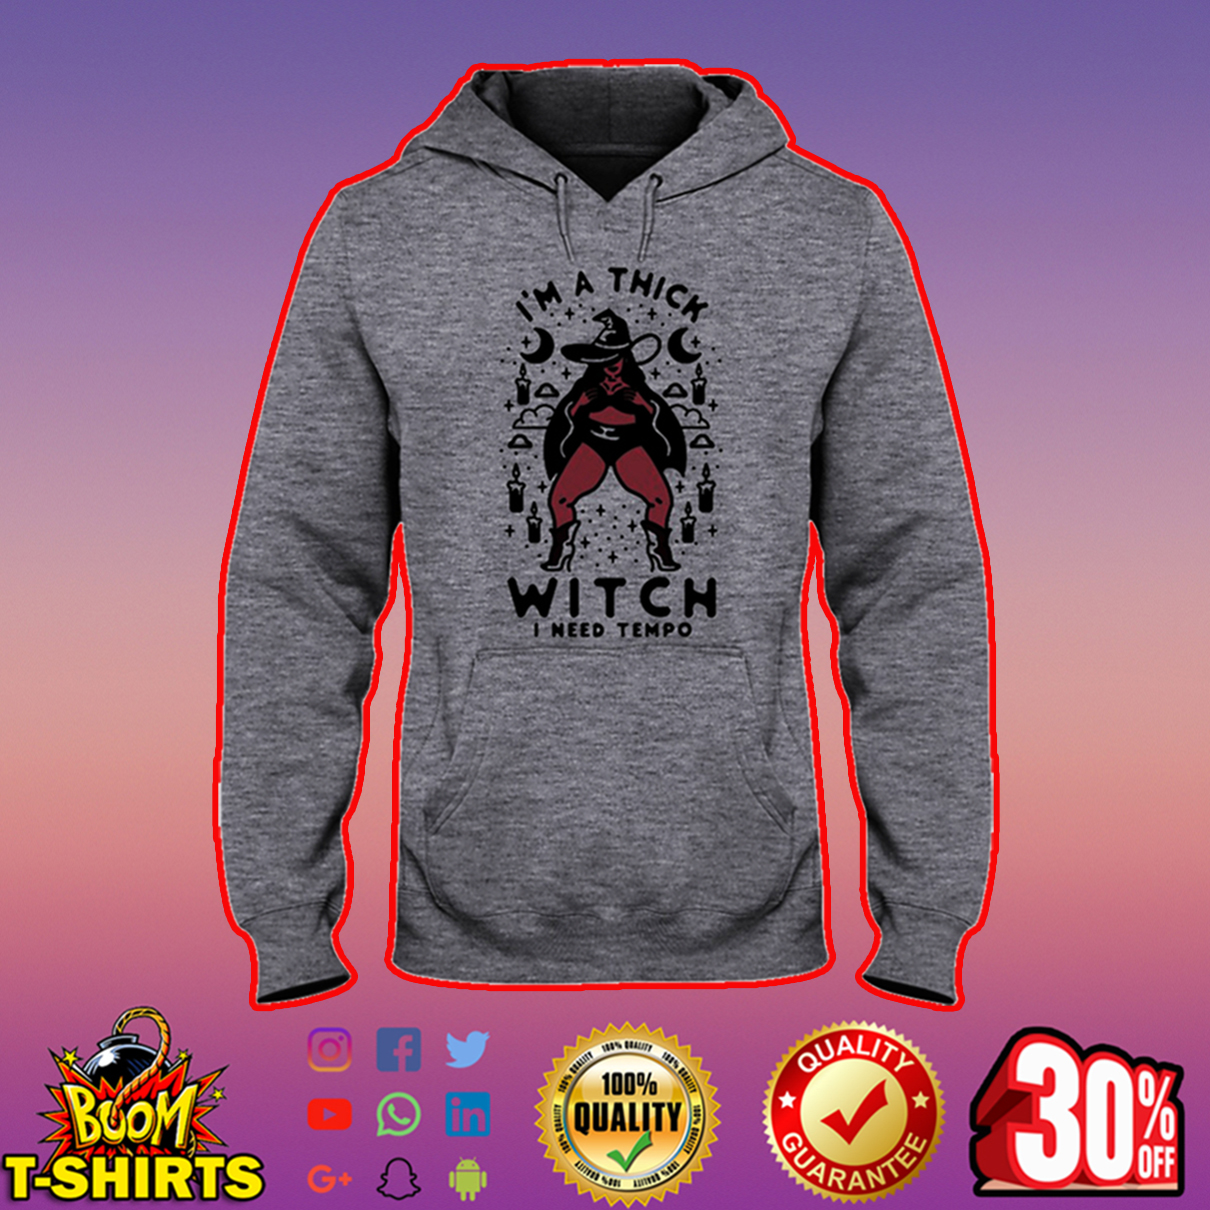 I'm a thick witch I need tempo hooded swewatshirt